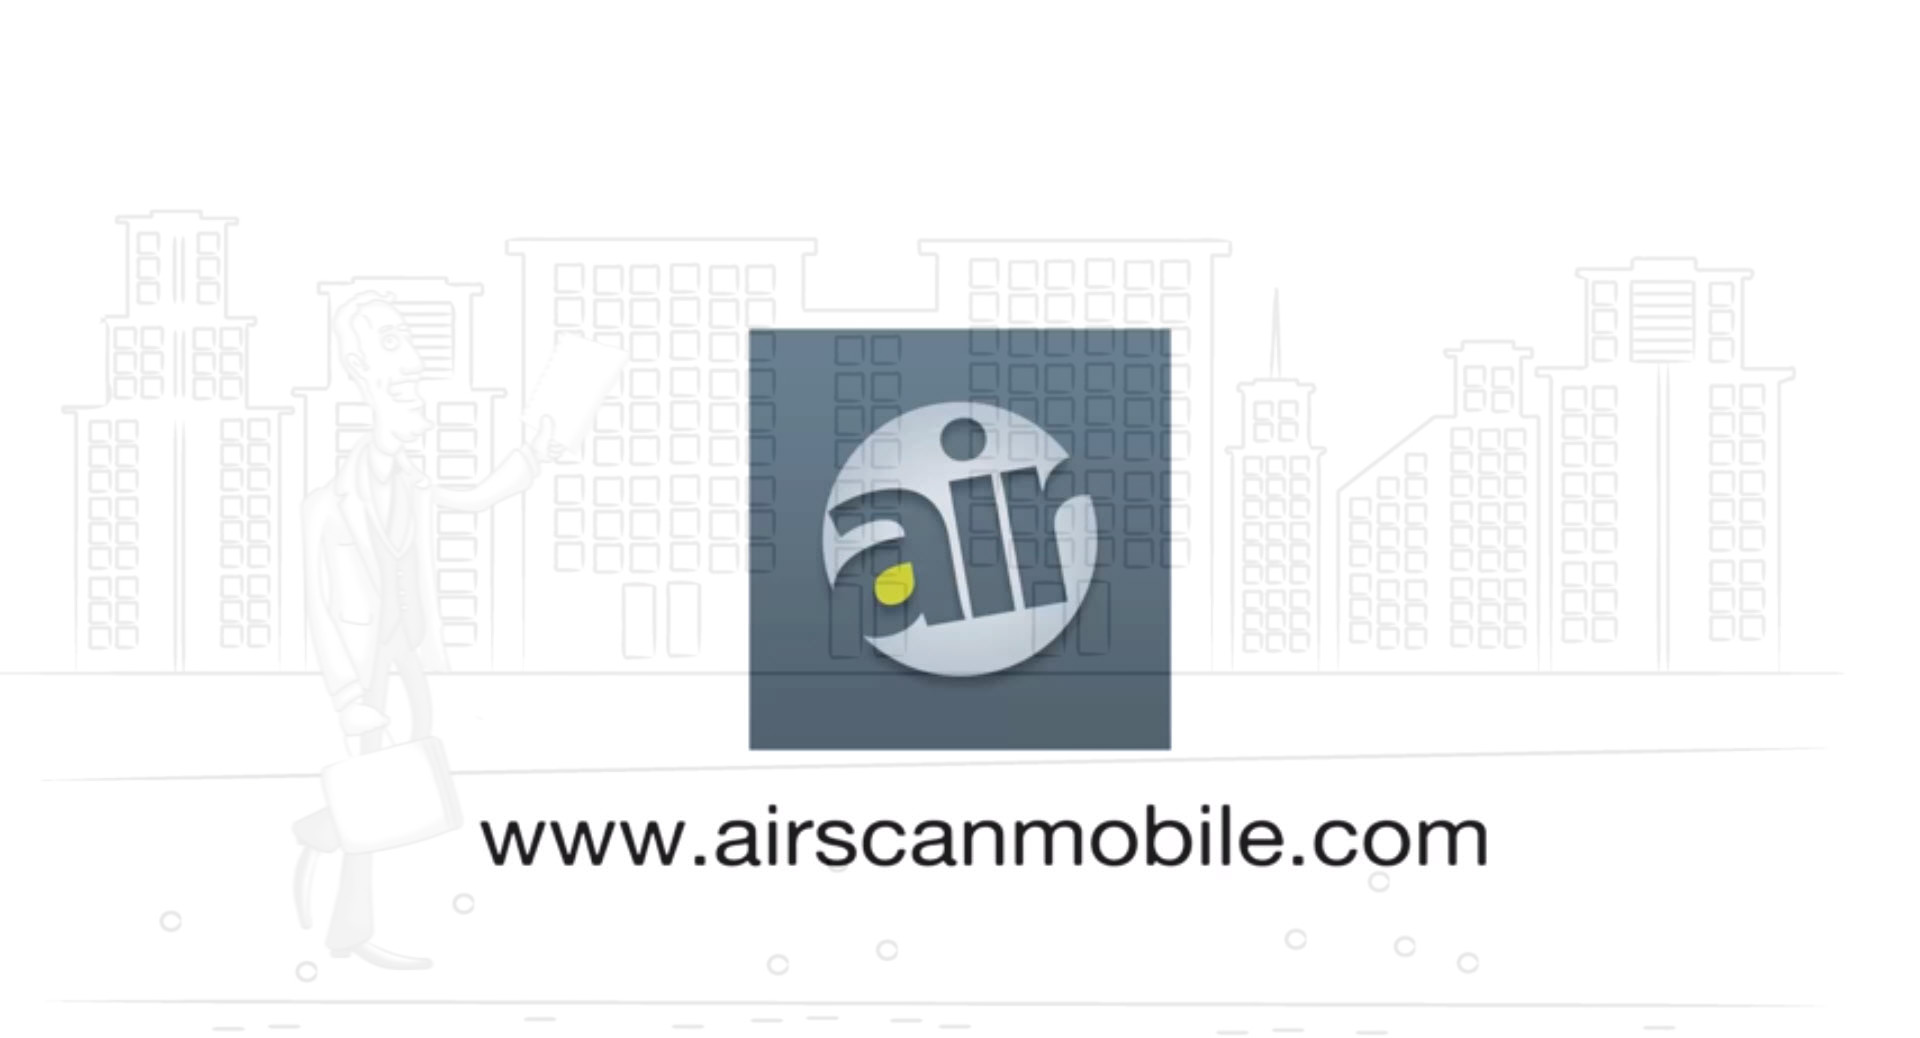 Say Good Bye To Bulky Scanners With airScan mobile PDF Scanner